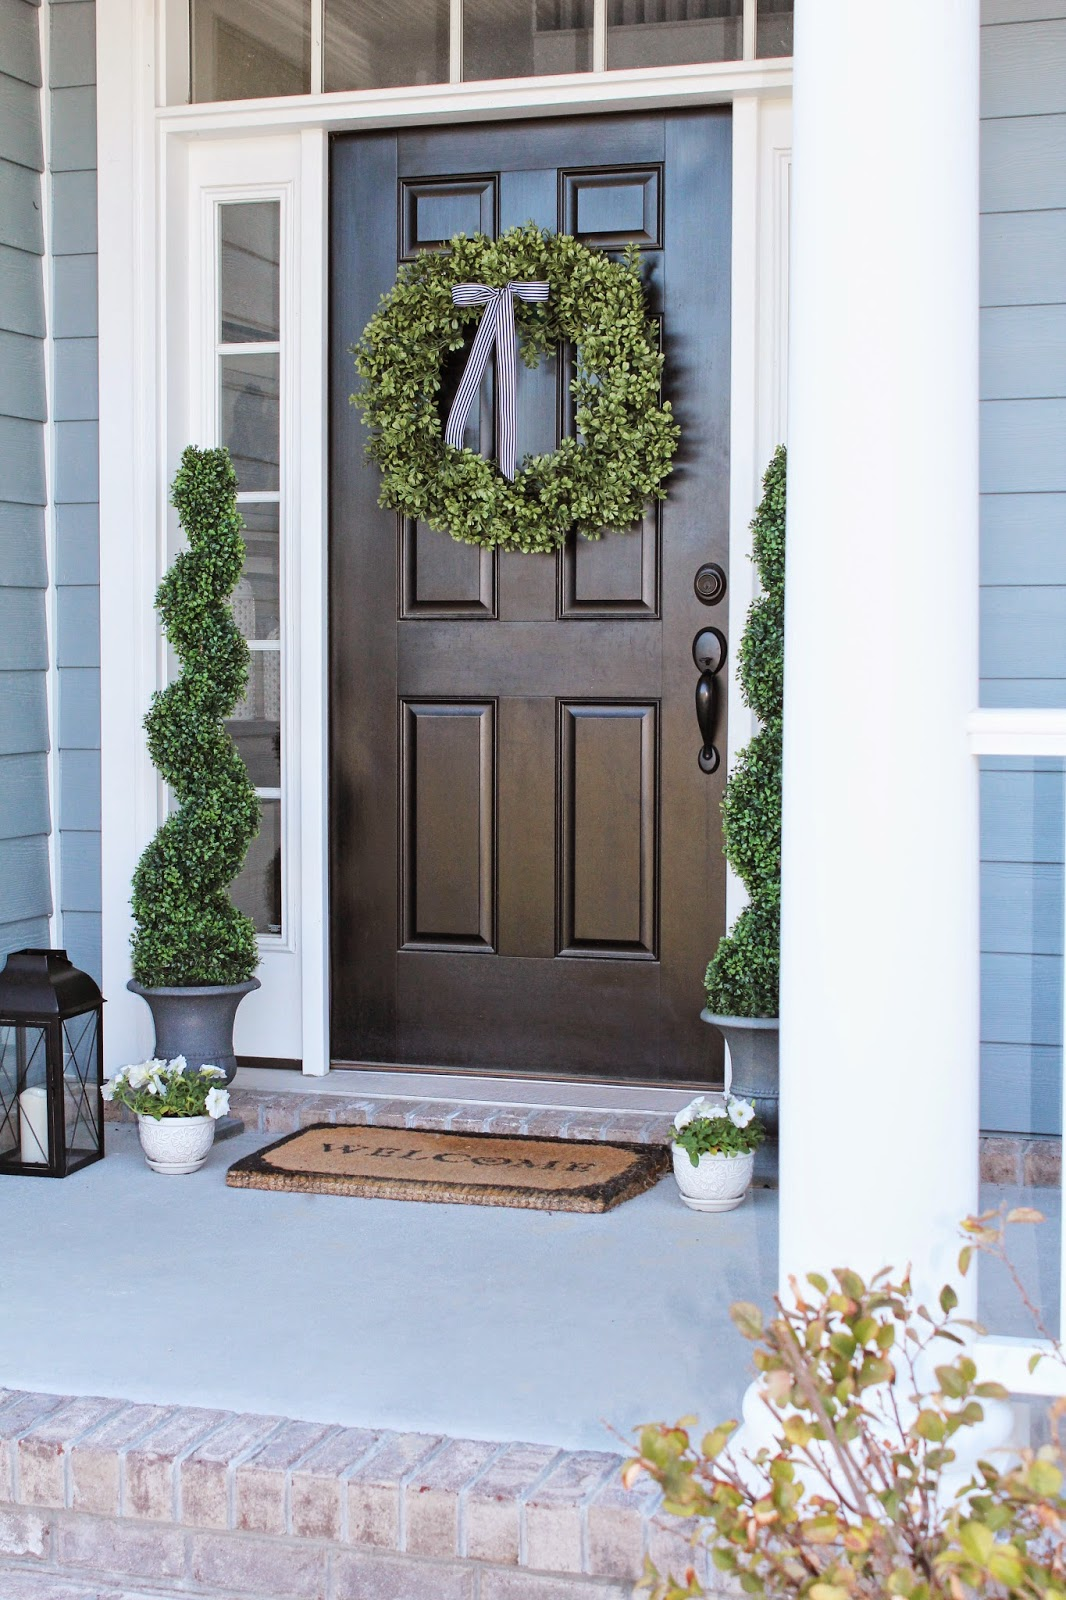 Decorating your front porch, Topiaries, Boxwood Wreath, Laterns, Planters